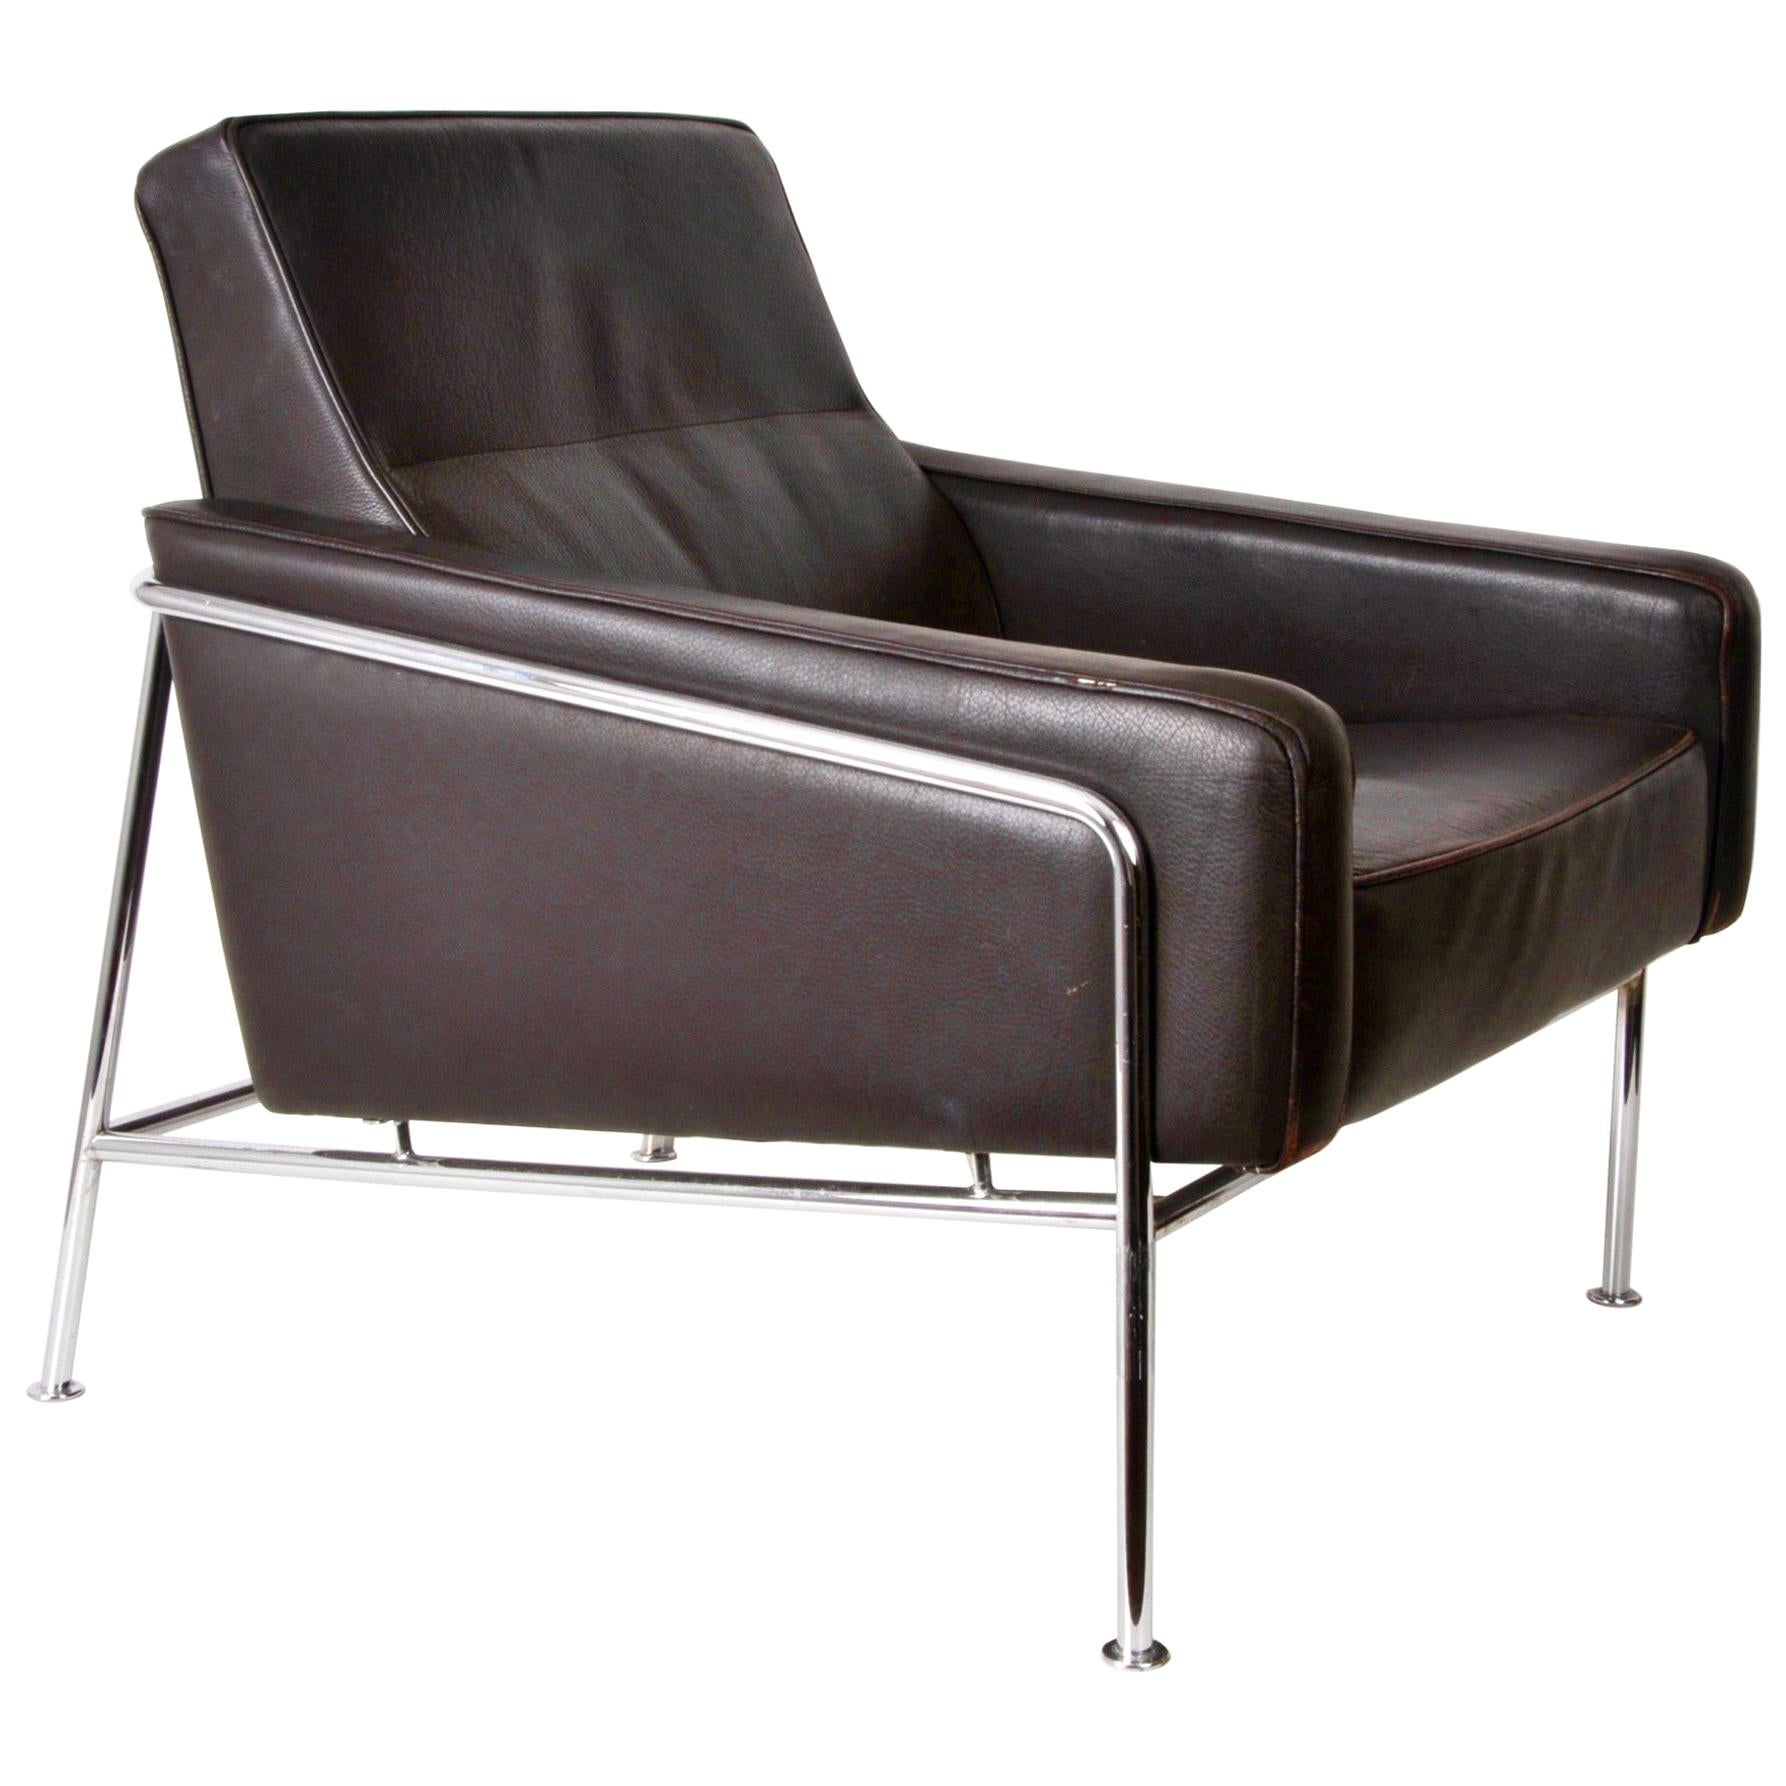 Midcentury Dark Brown Leather Lounge Chair Attributed to Arne Jacobsen, 1956